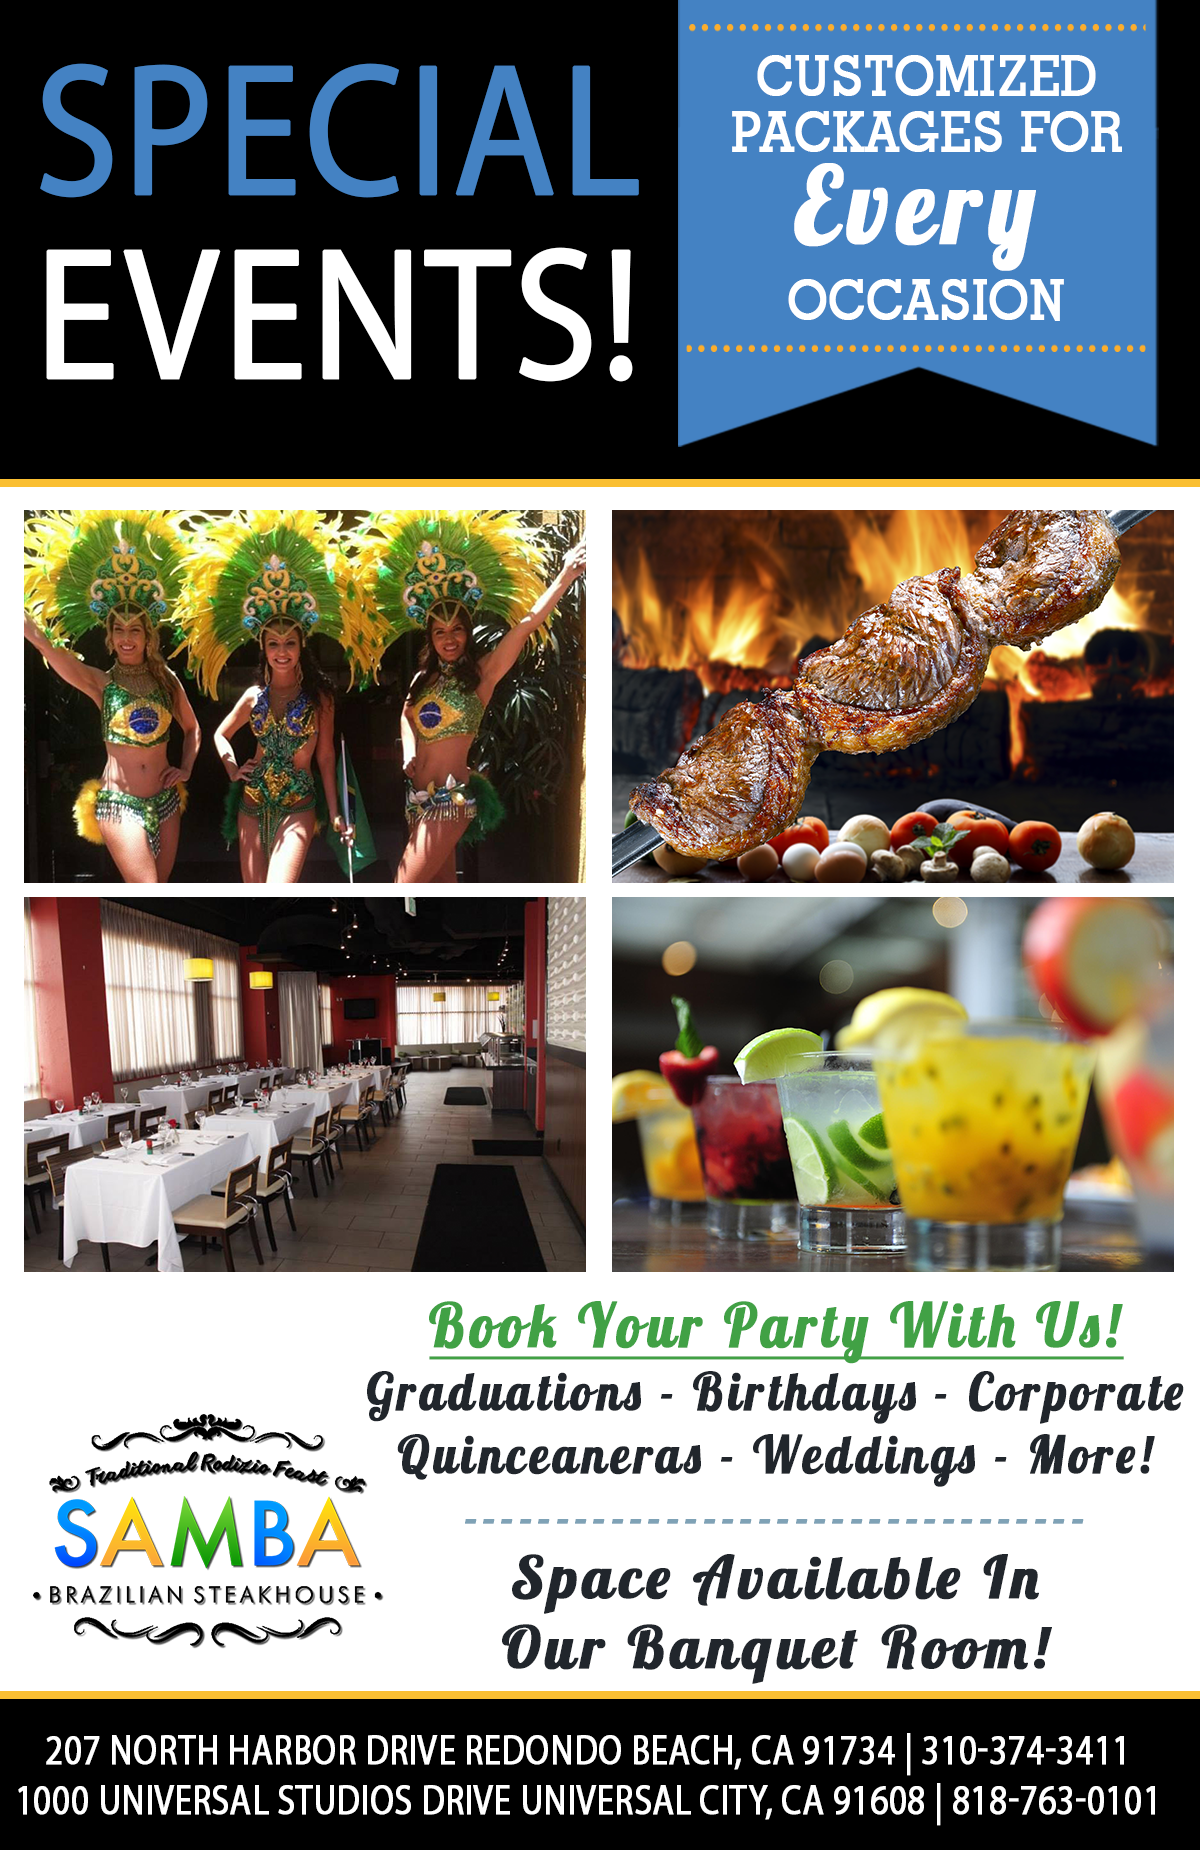 Flyer for special events: Customized packages for every occasion. Book your party with us! Graduations, birthdays, corporate, quinceaneras, weddings, more!